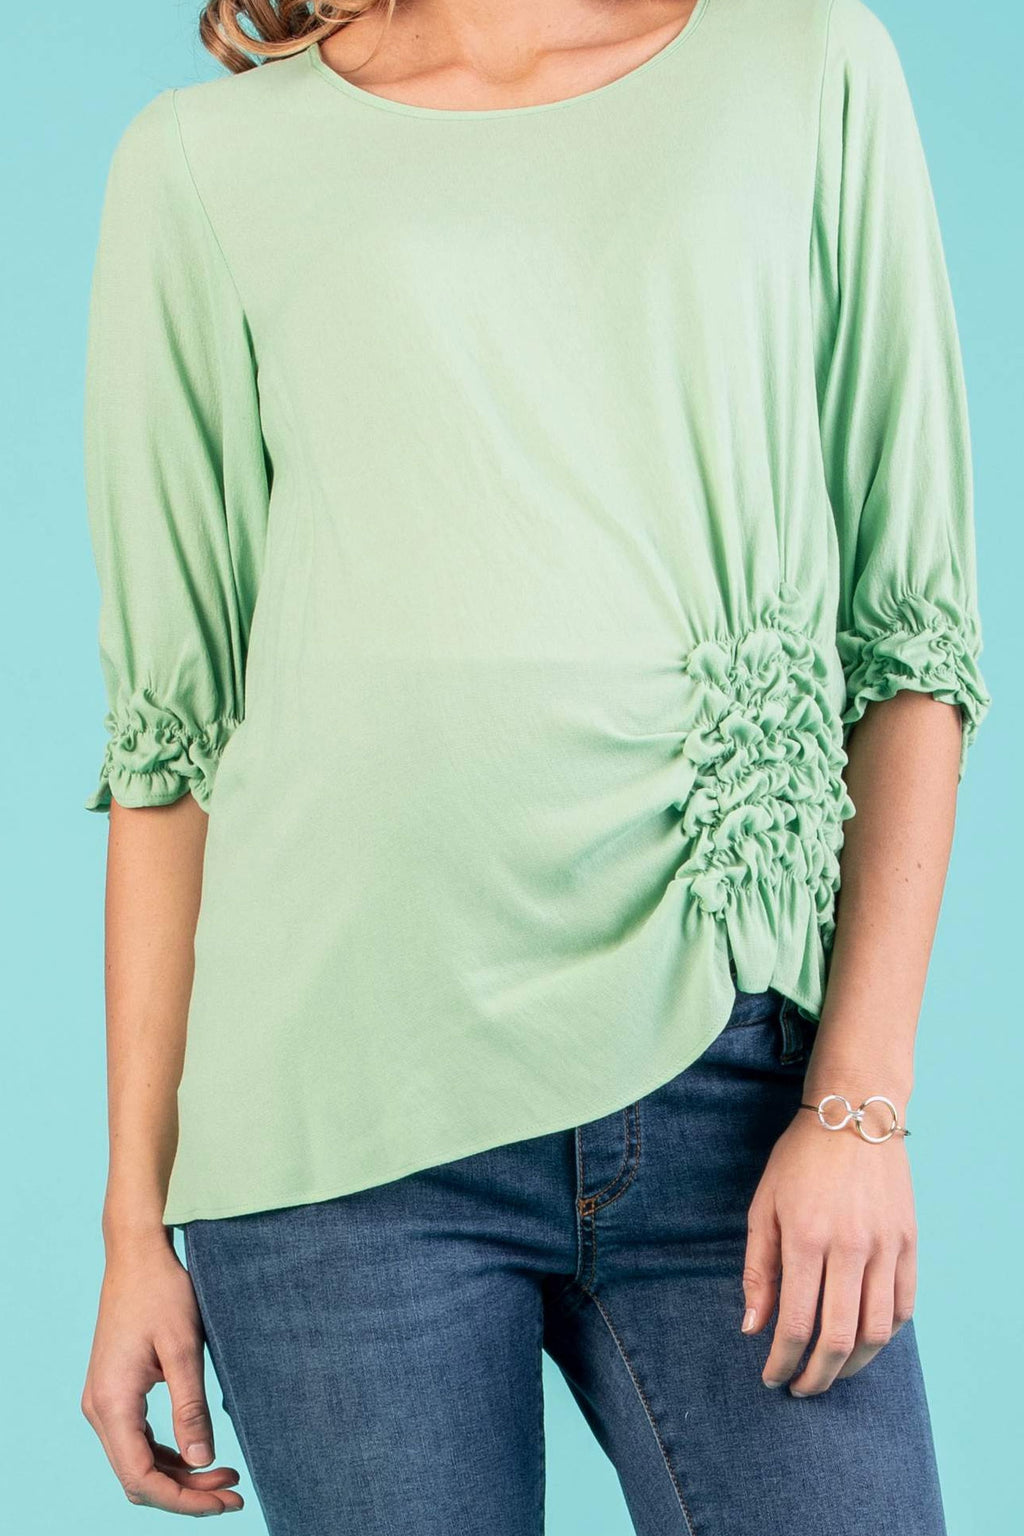 The Alyssa Side-Detailed Maternity Top in Pistachio - Seven Women Maternity